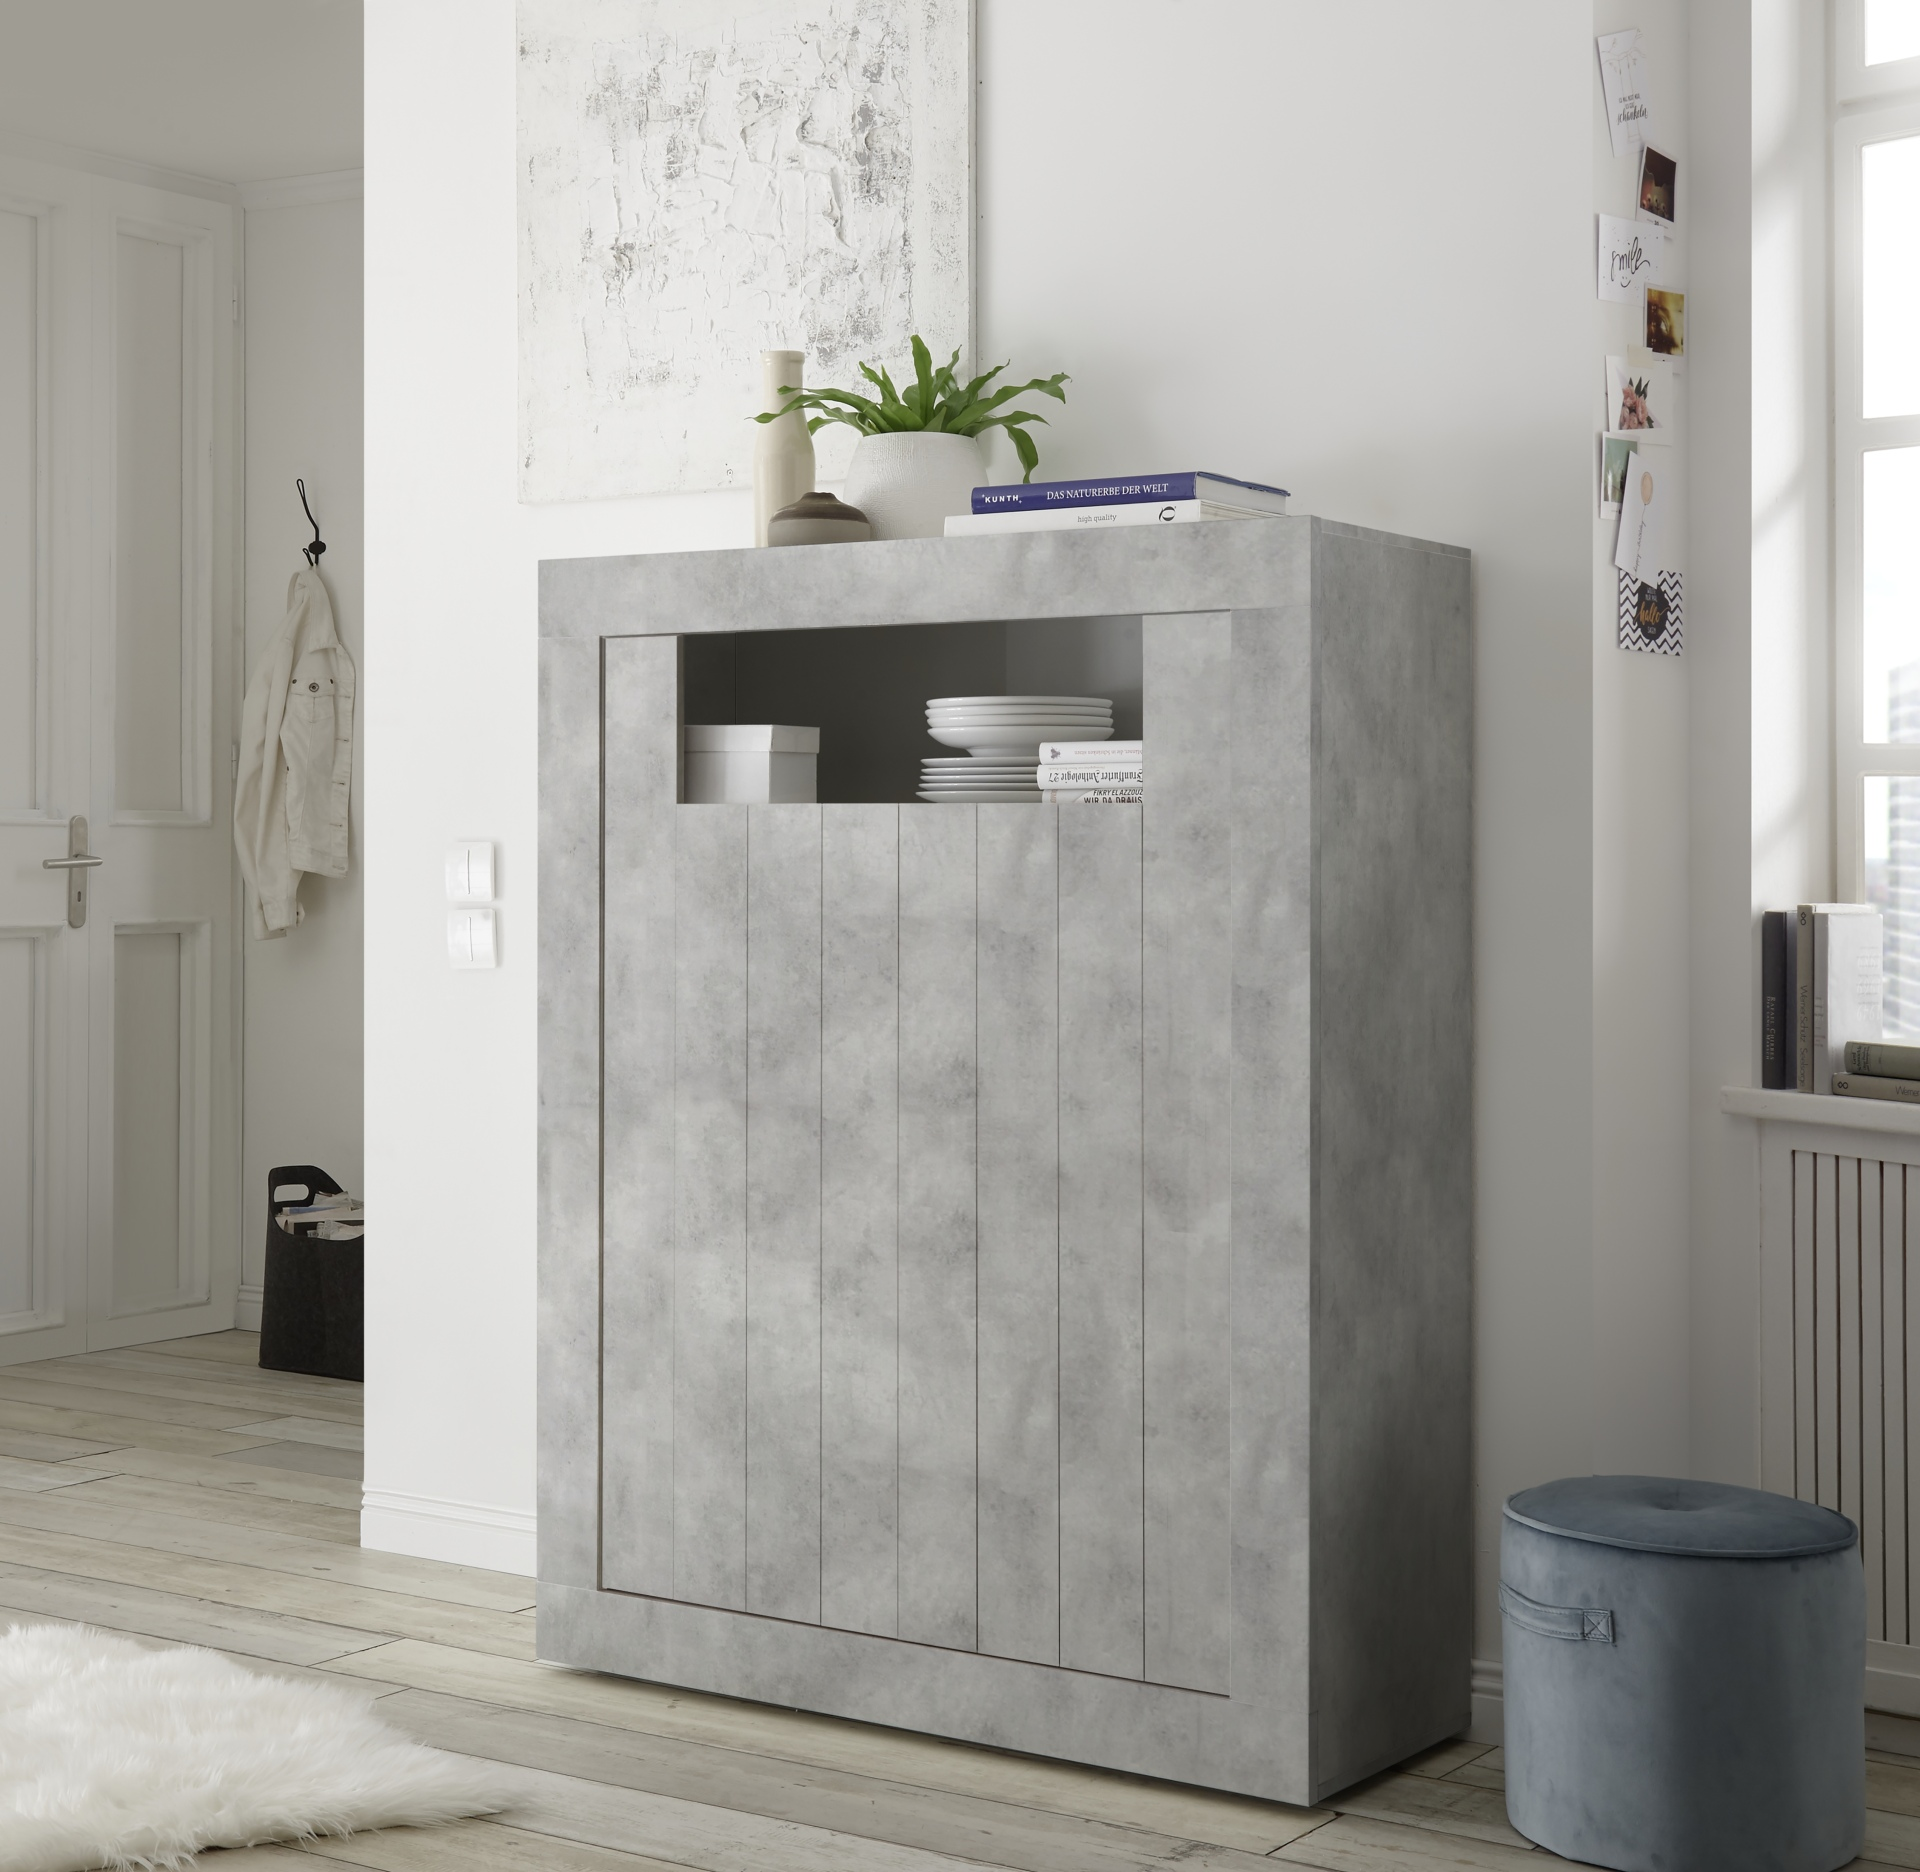 Highboard kast betonlook